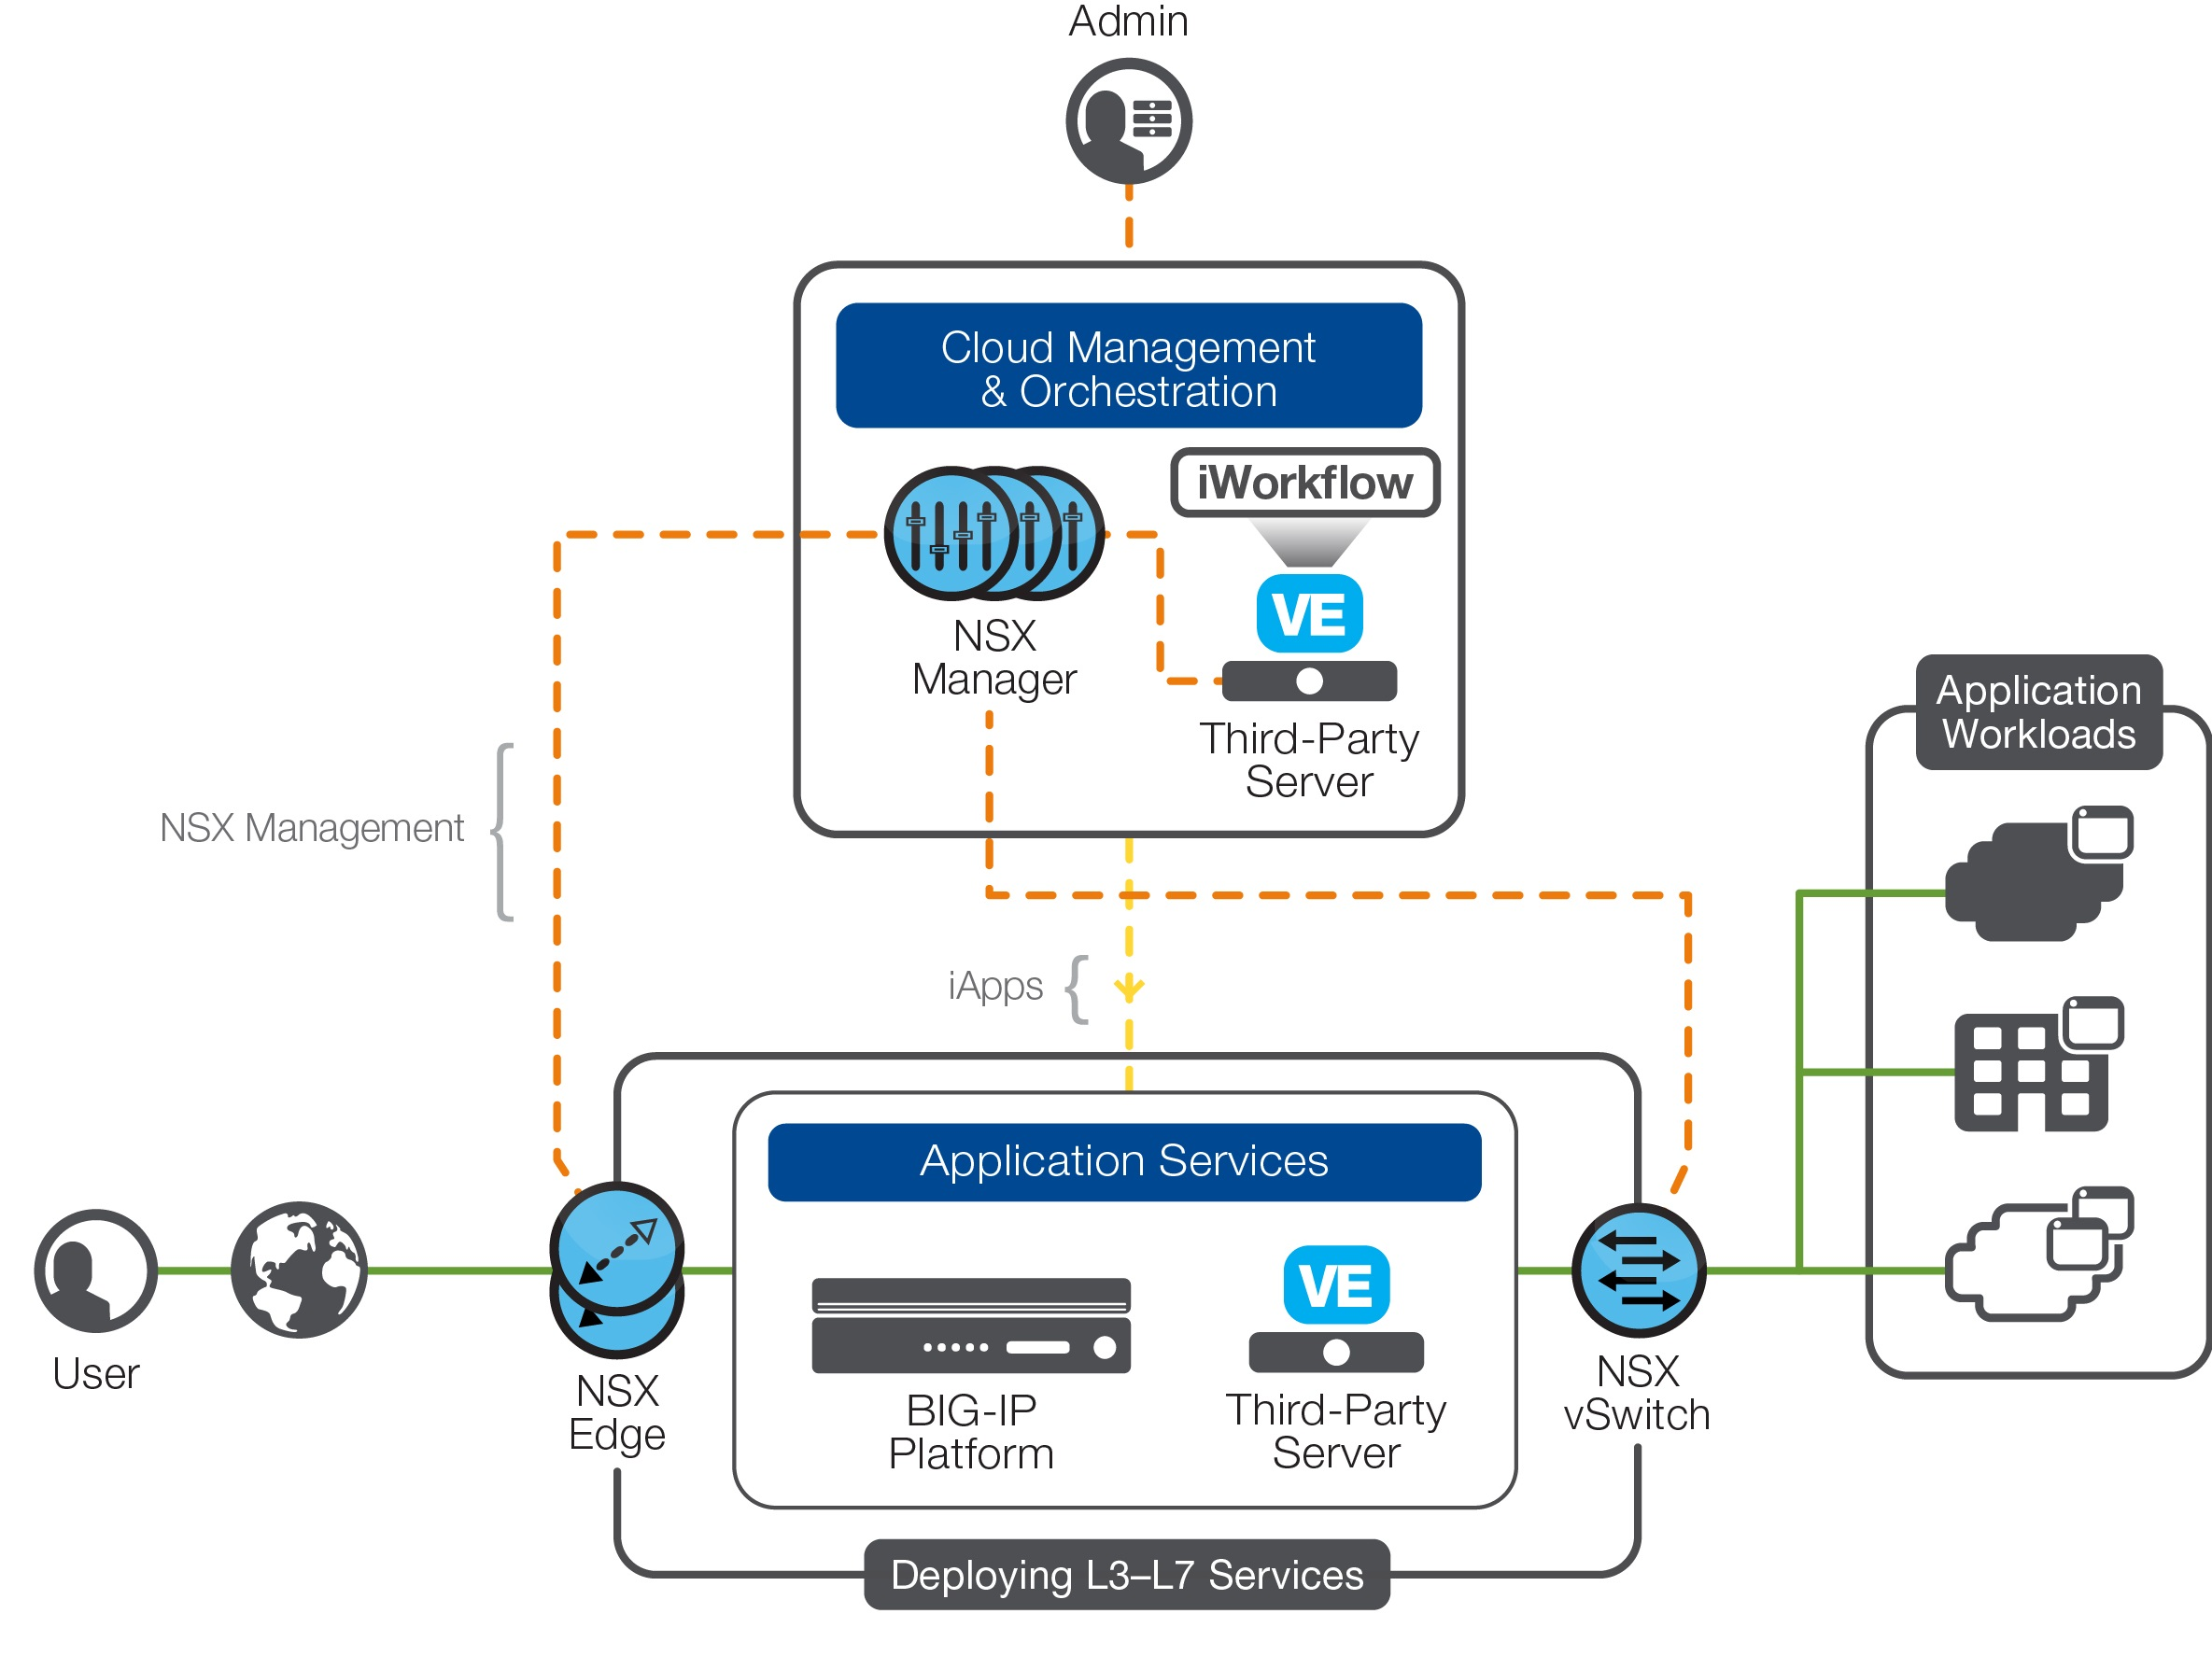 f5 reference architecture for vmware nsx